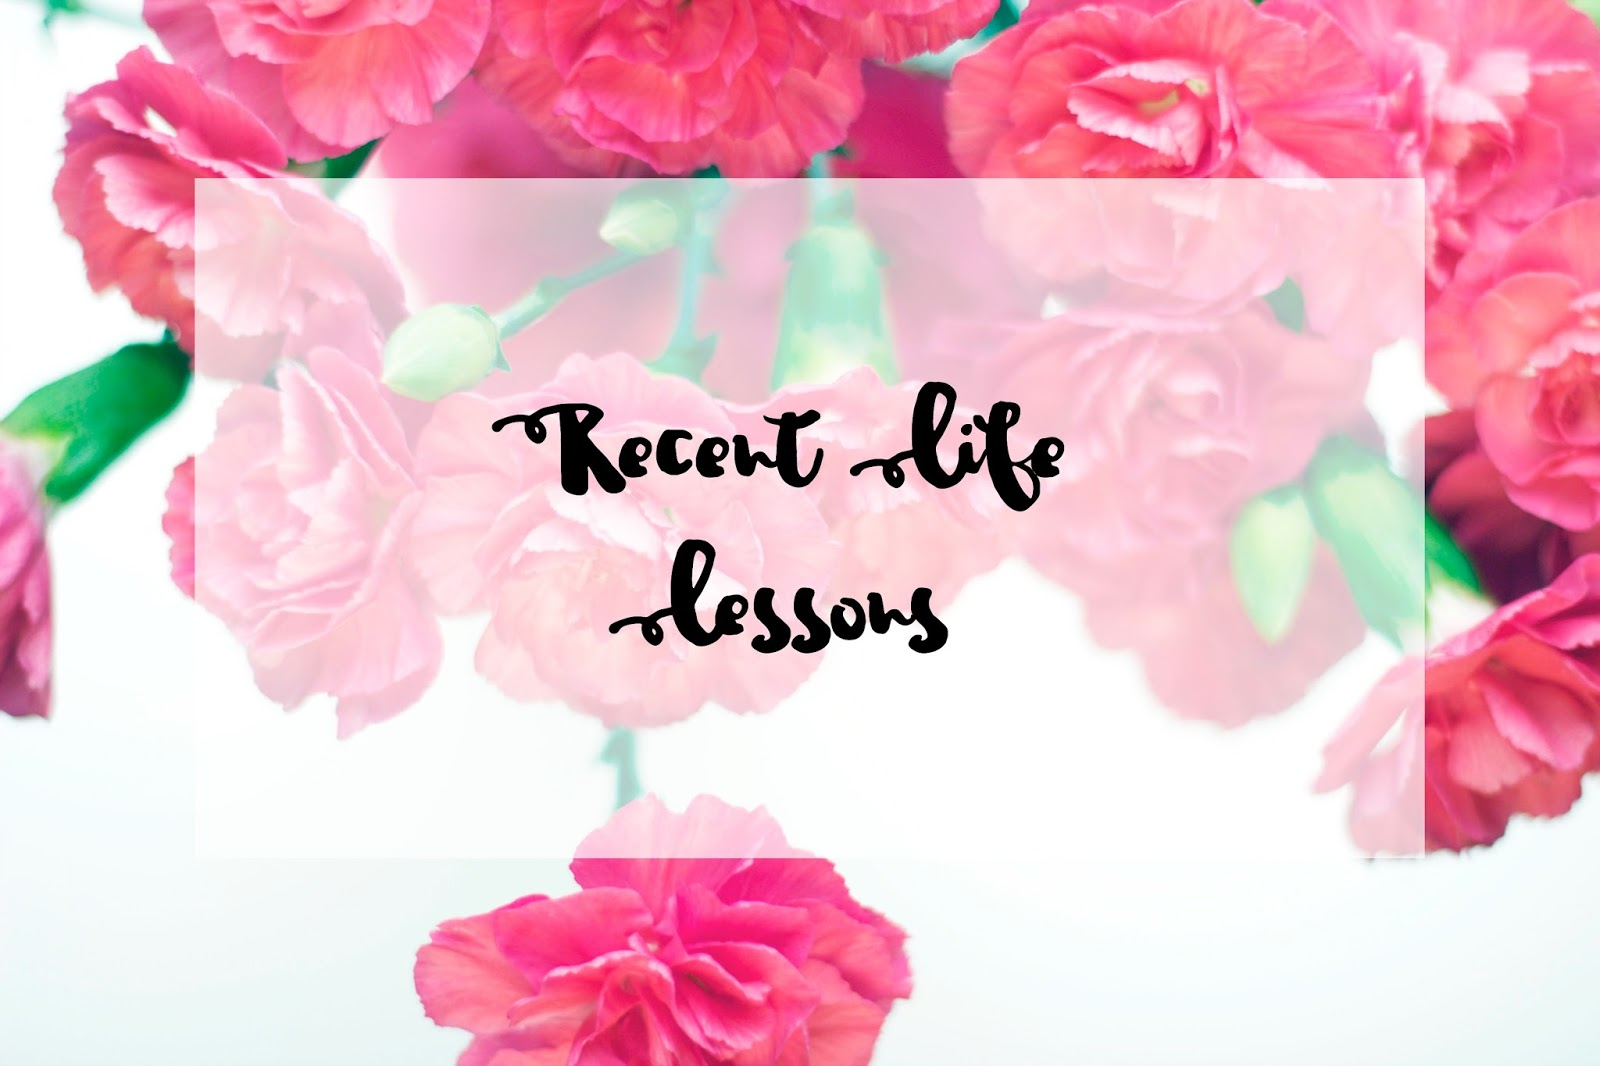 Recent Life Lessons